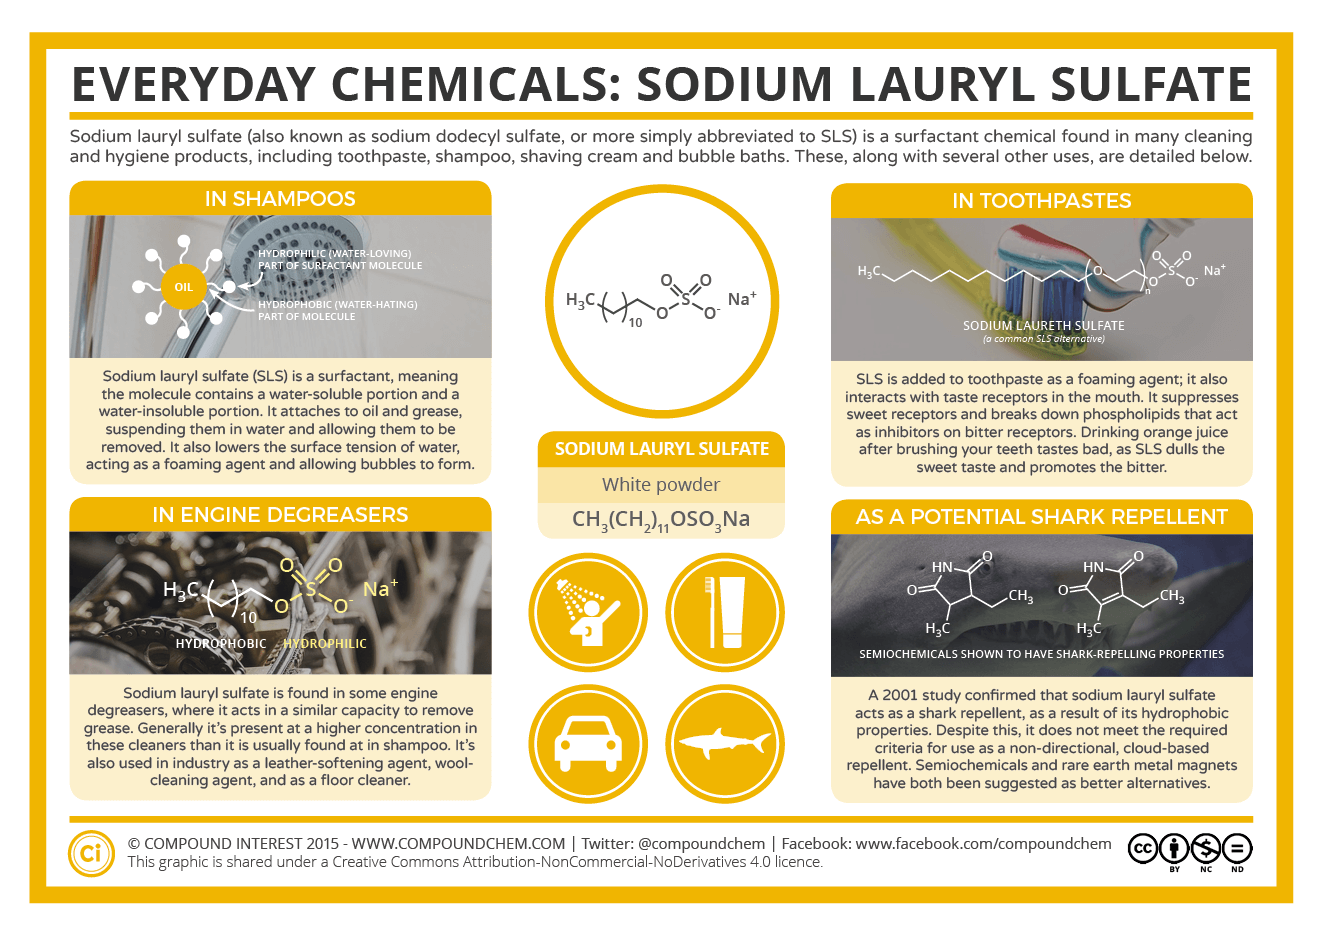 What Makes Shampoo Foam Everyday Compounds Sodium Lauryl Sulfate Compound Interest